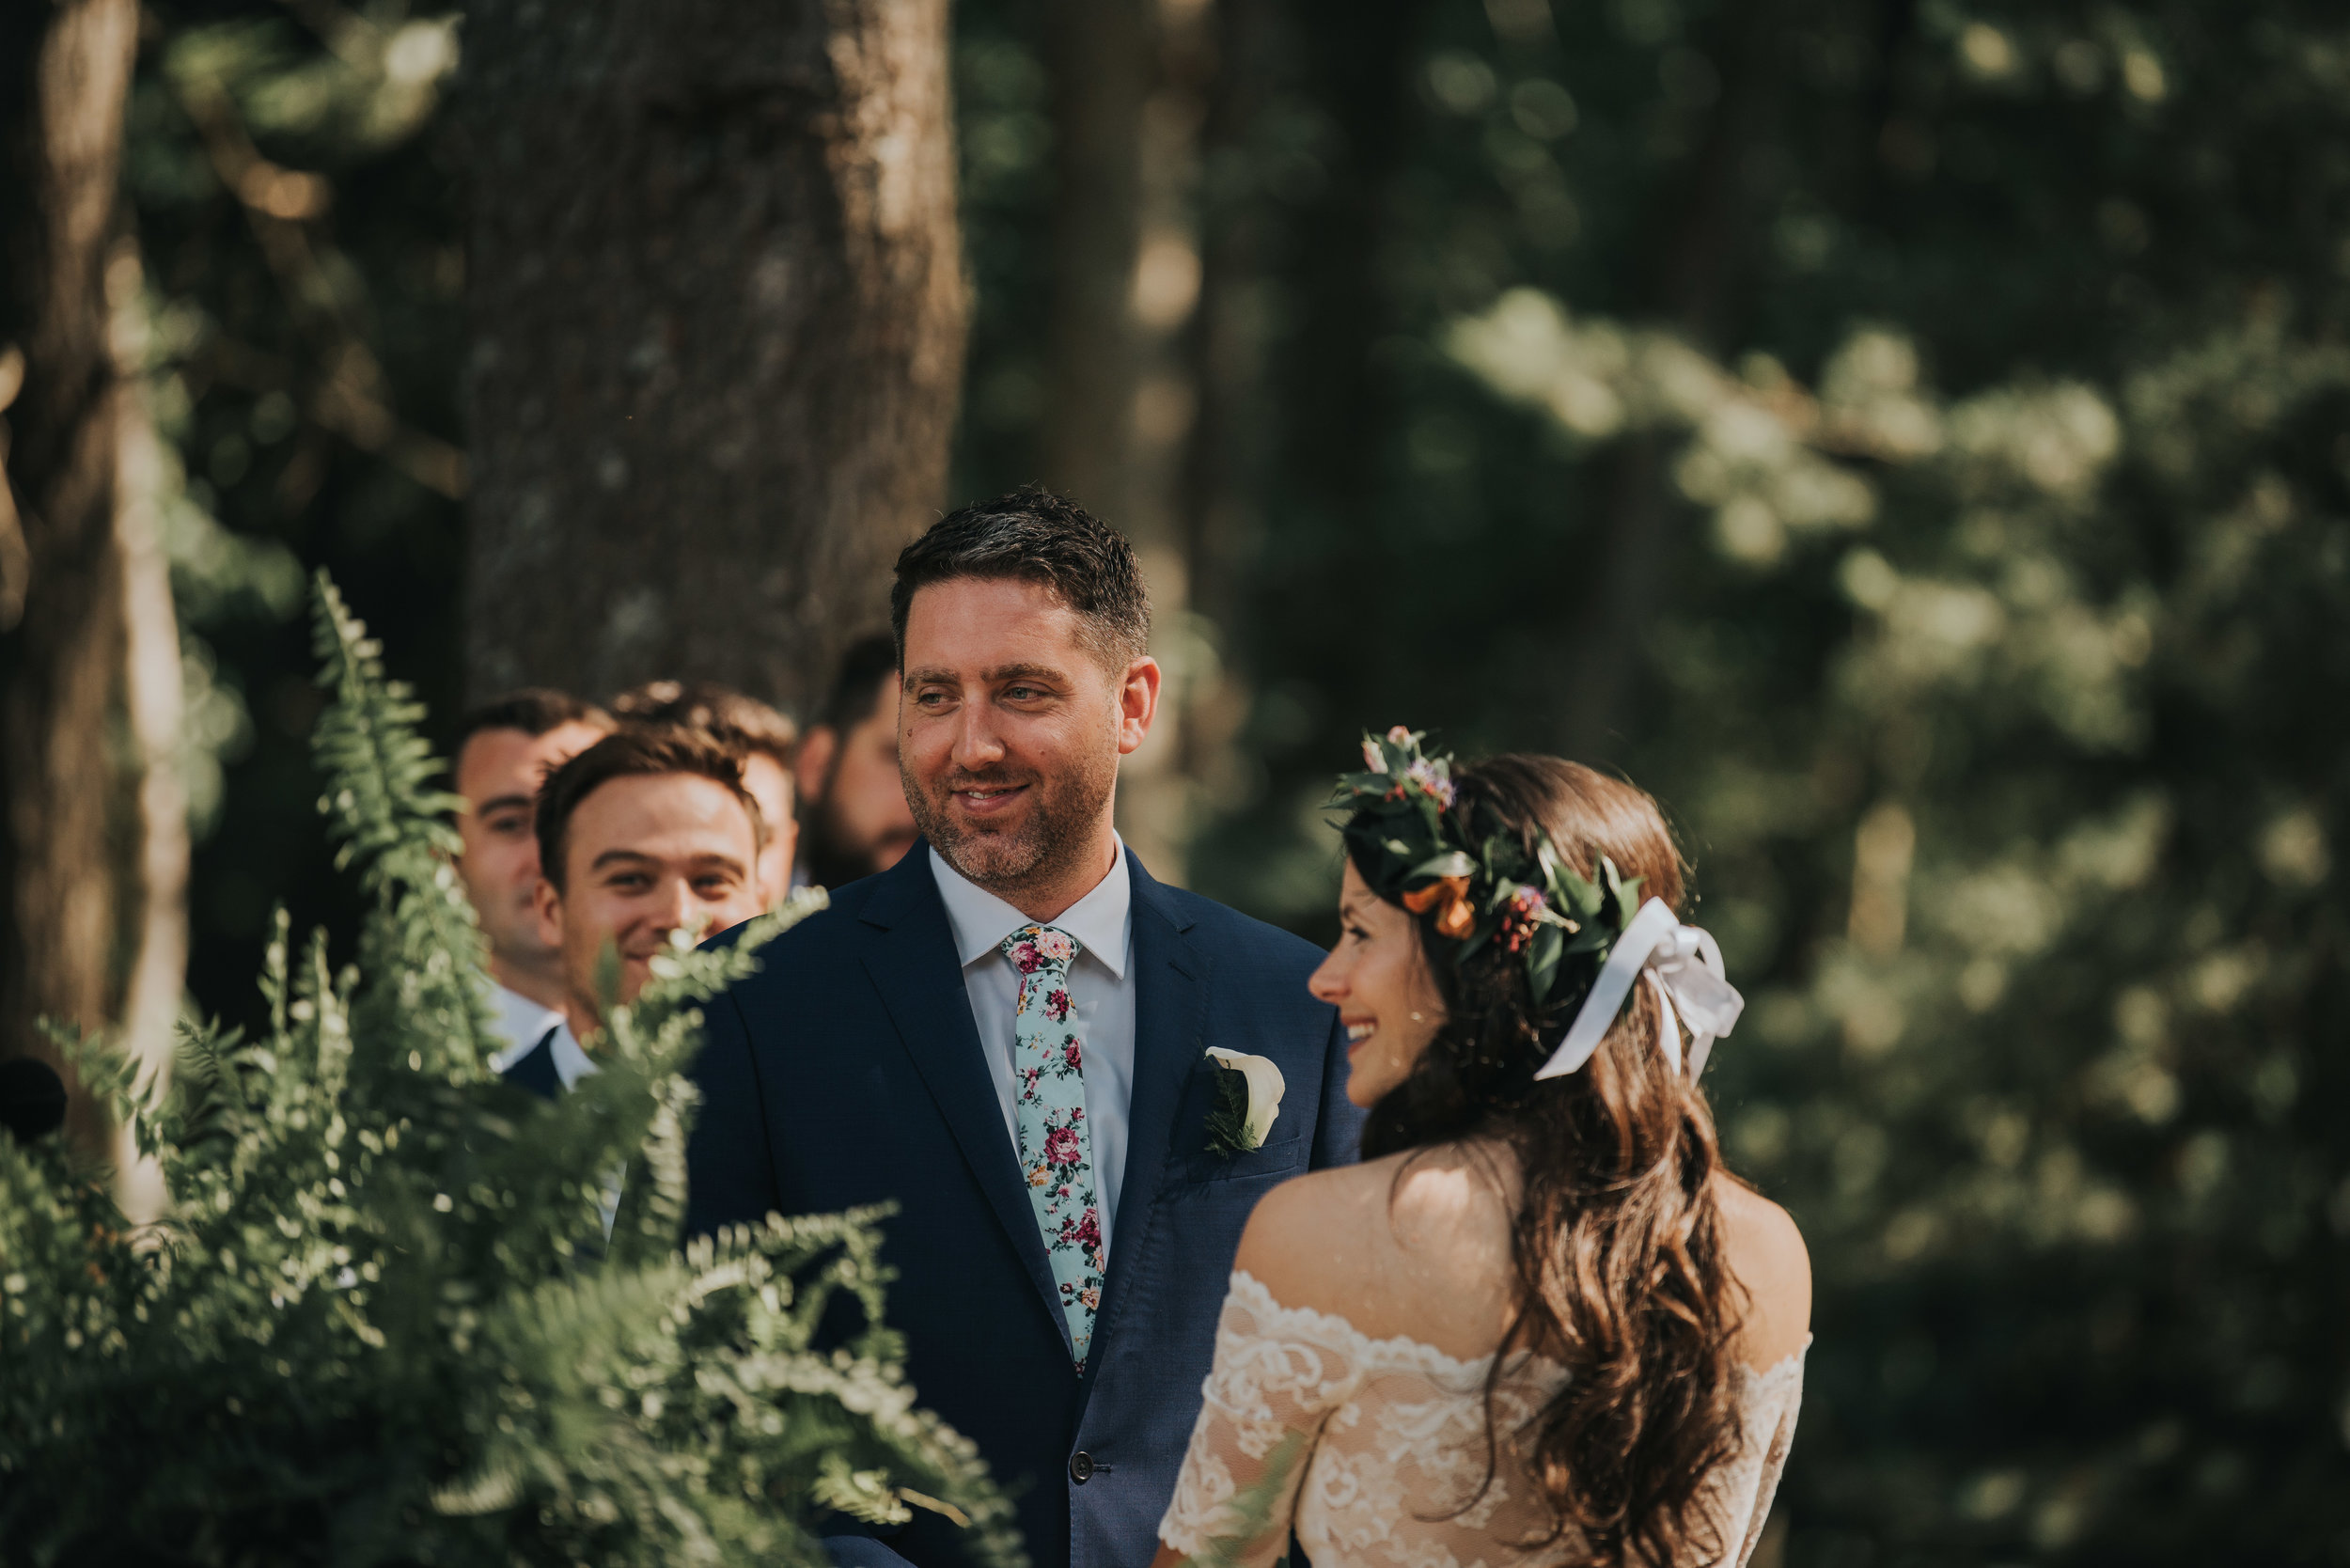 bride-and-groom-vows-toronto-bohemian-boho-outdoor-summer-wedding-documentary-wedding-photography-by-willow-birch-photo.jpg